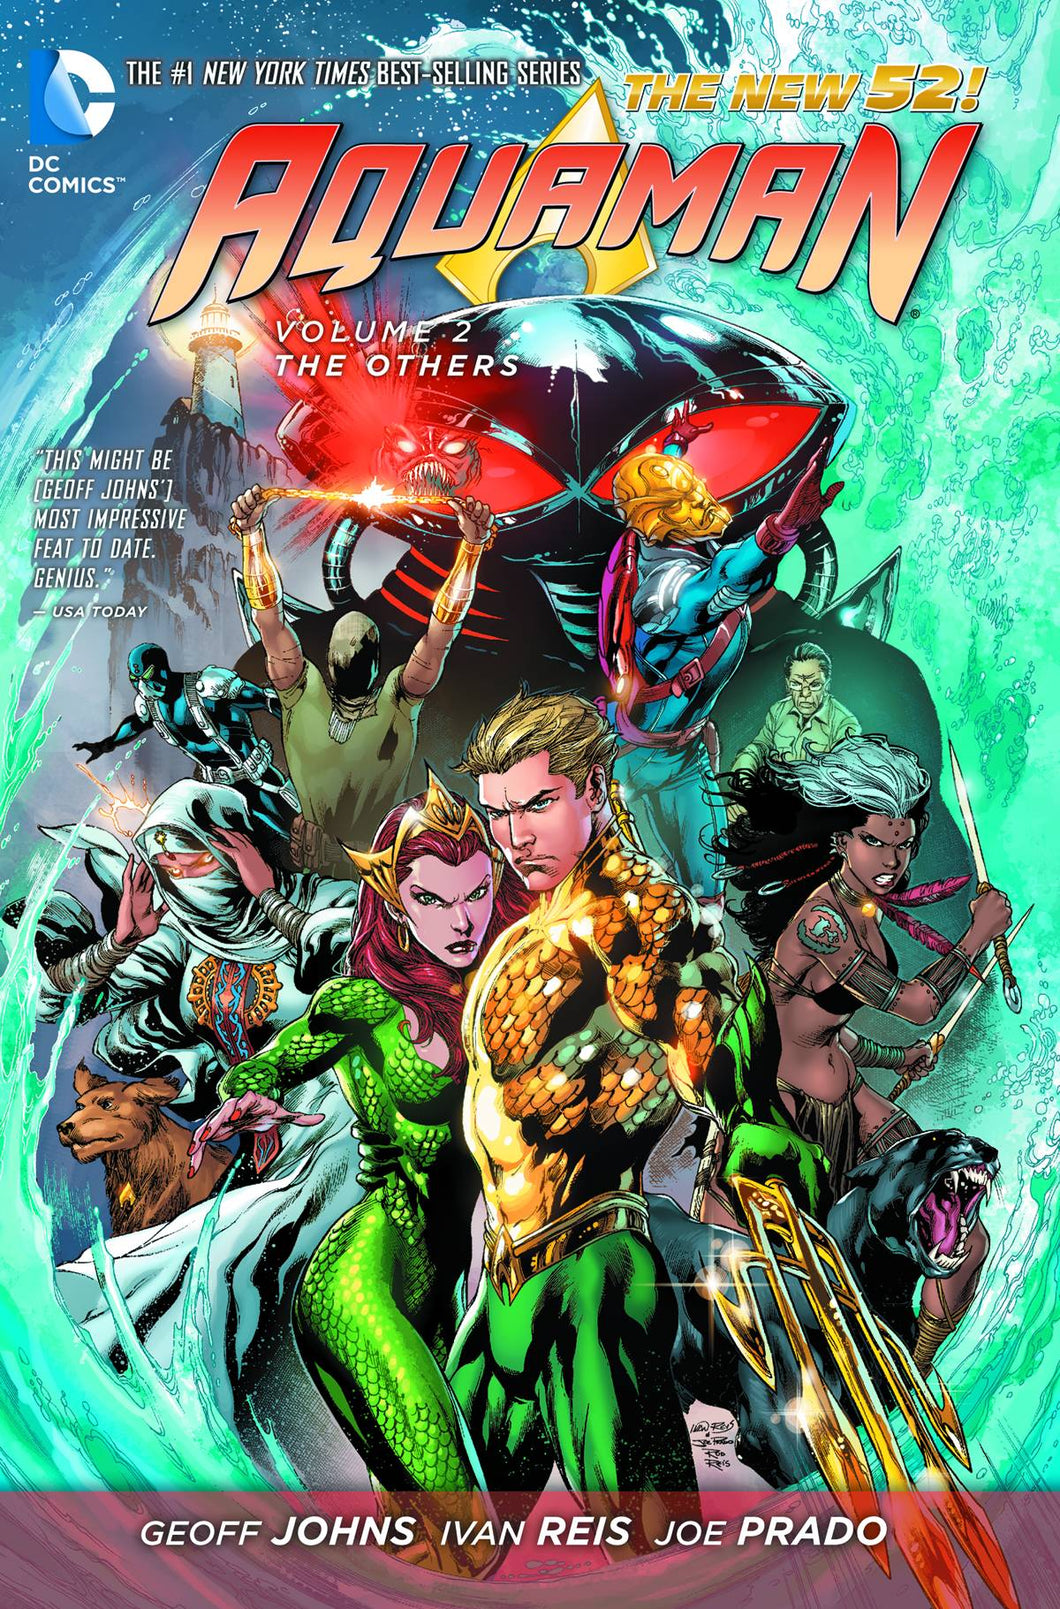 Aquaman Tp Vol 02 The Others (New 52)